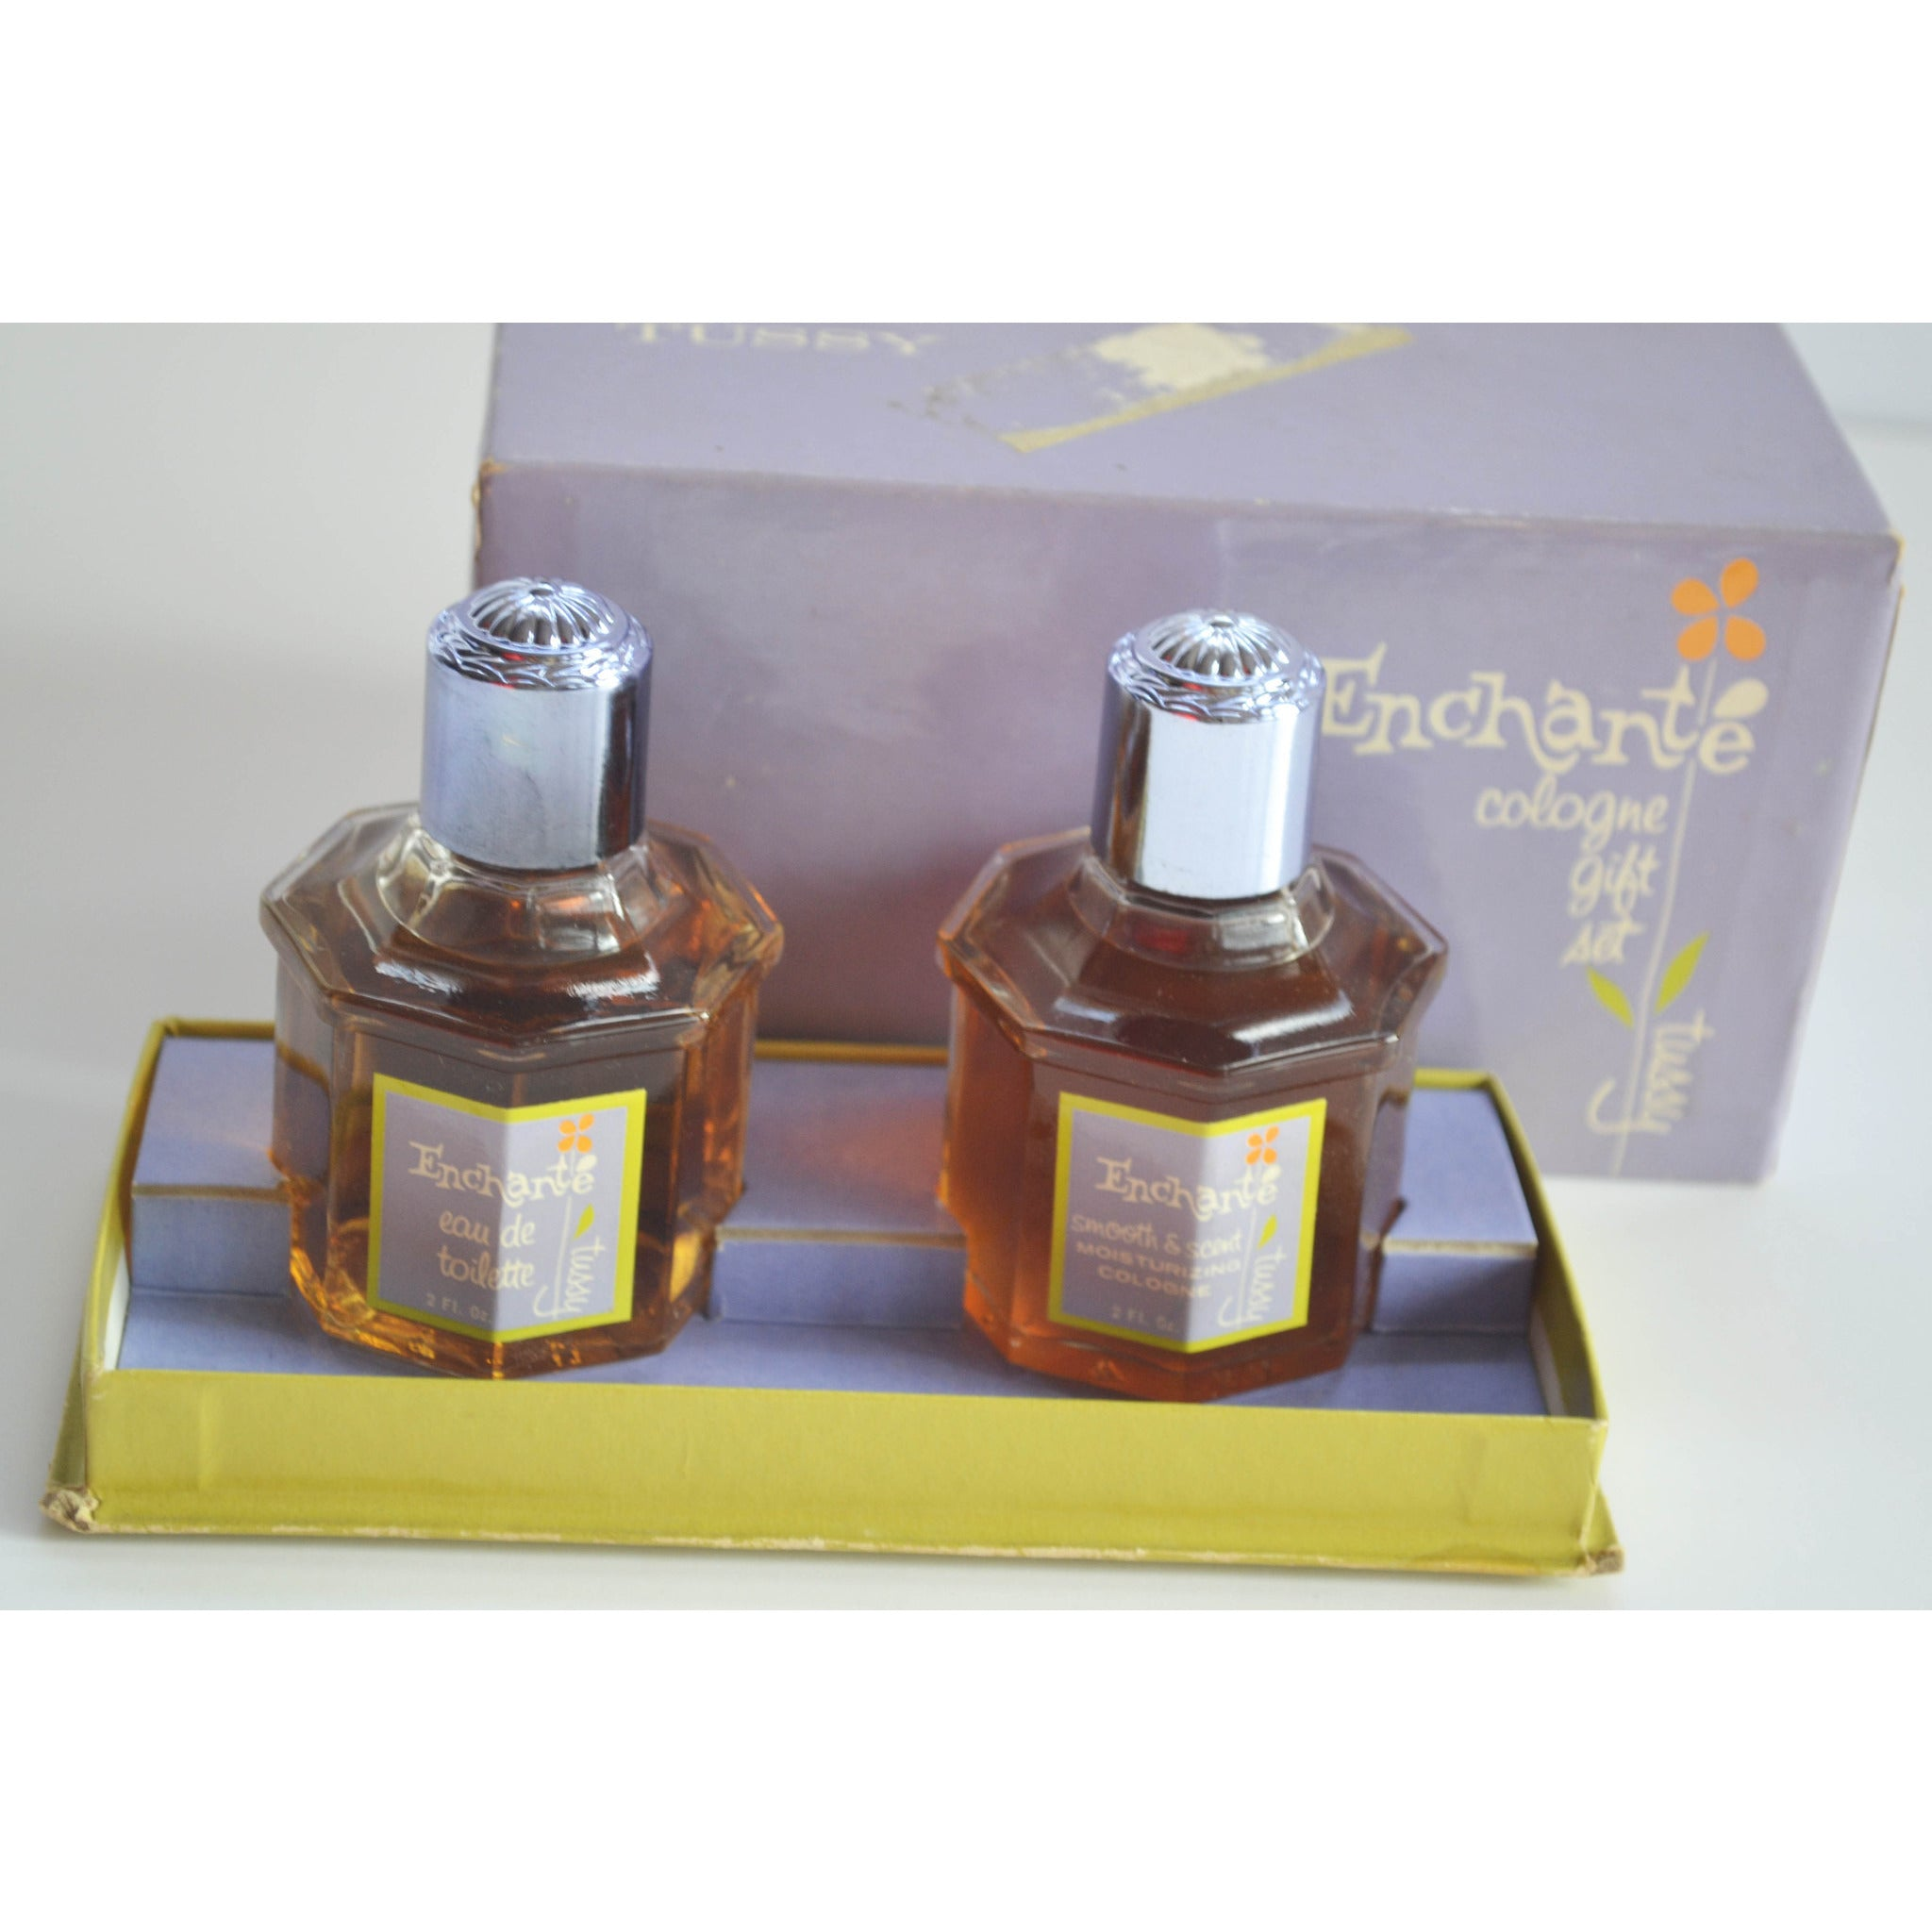 Vintage Enchante Cologne Gift Set By Tussy